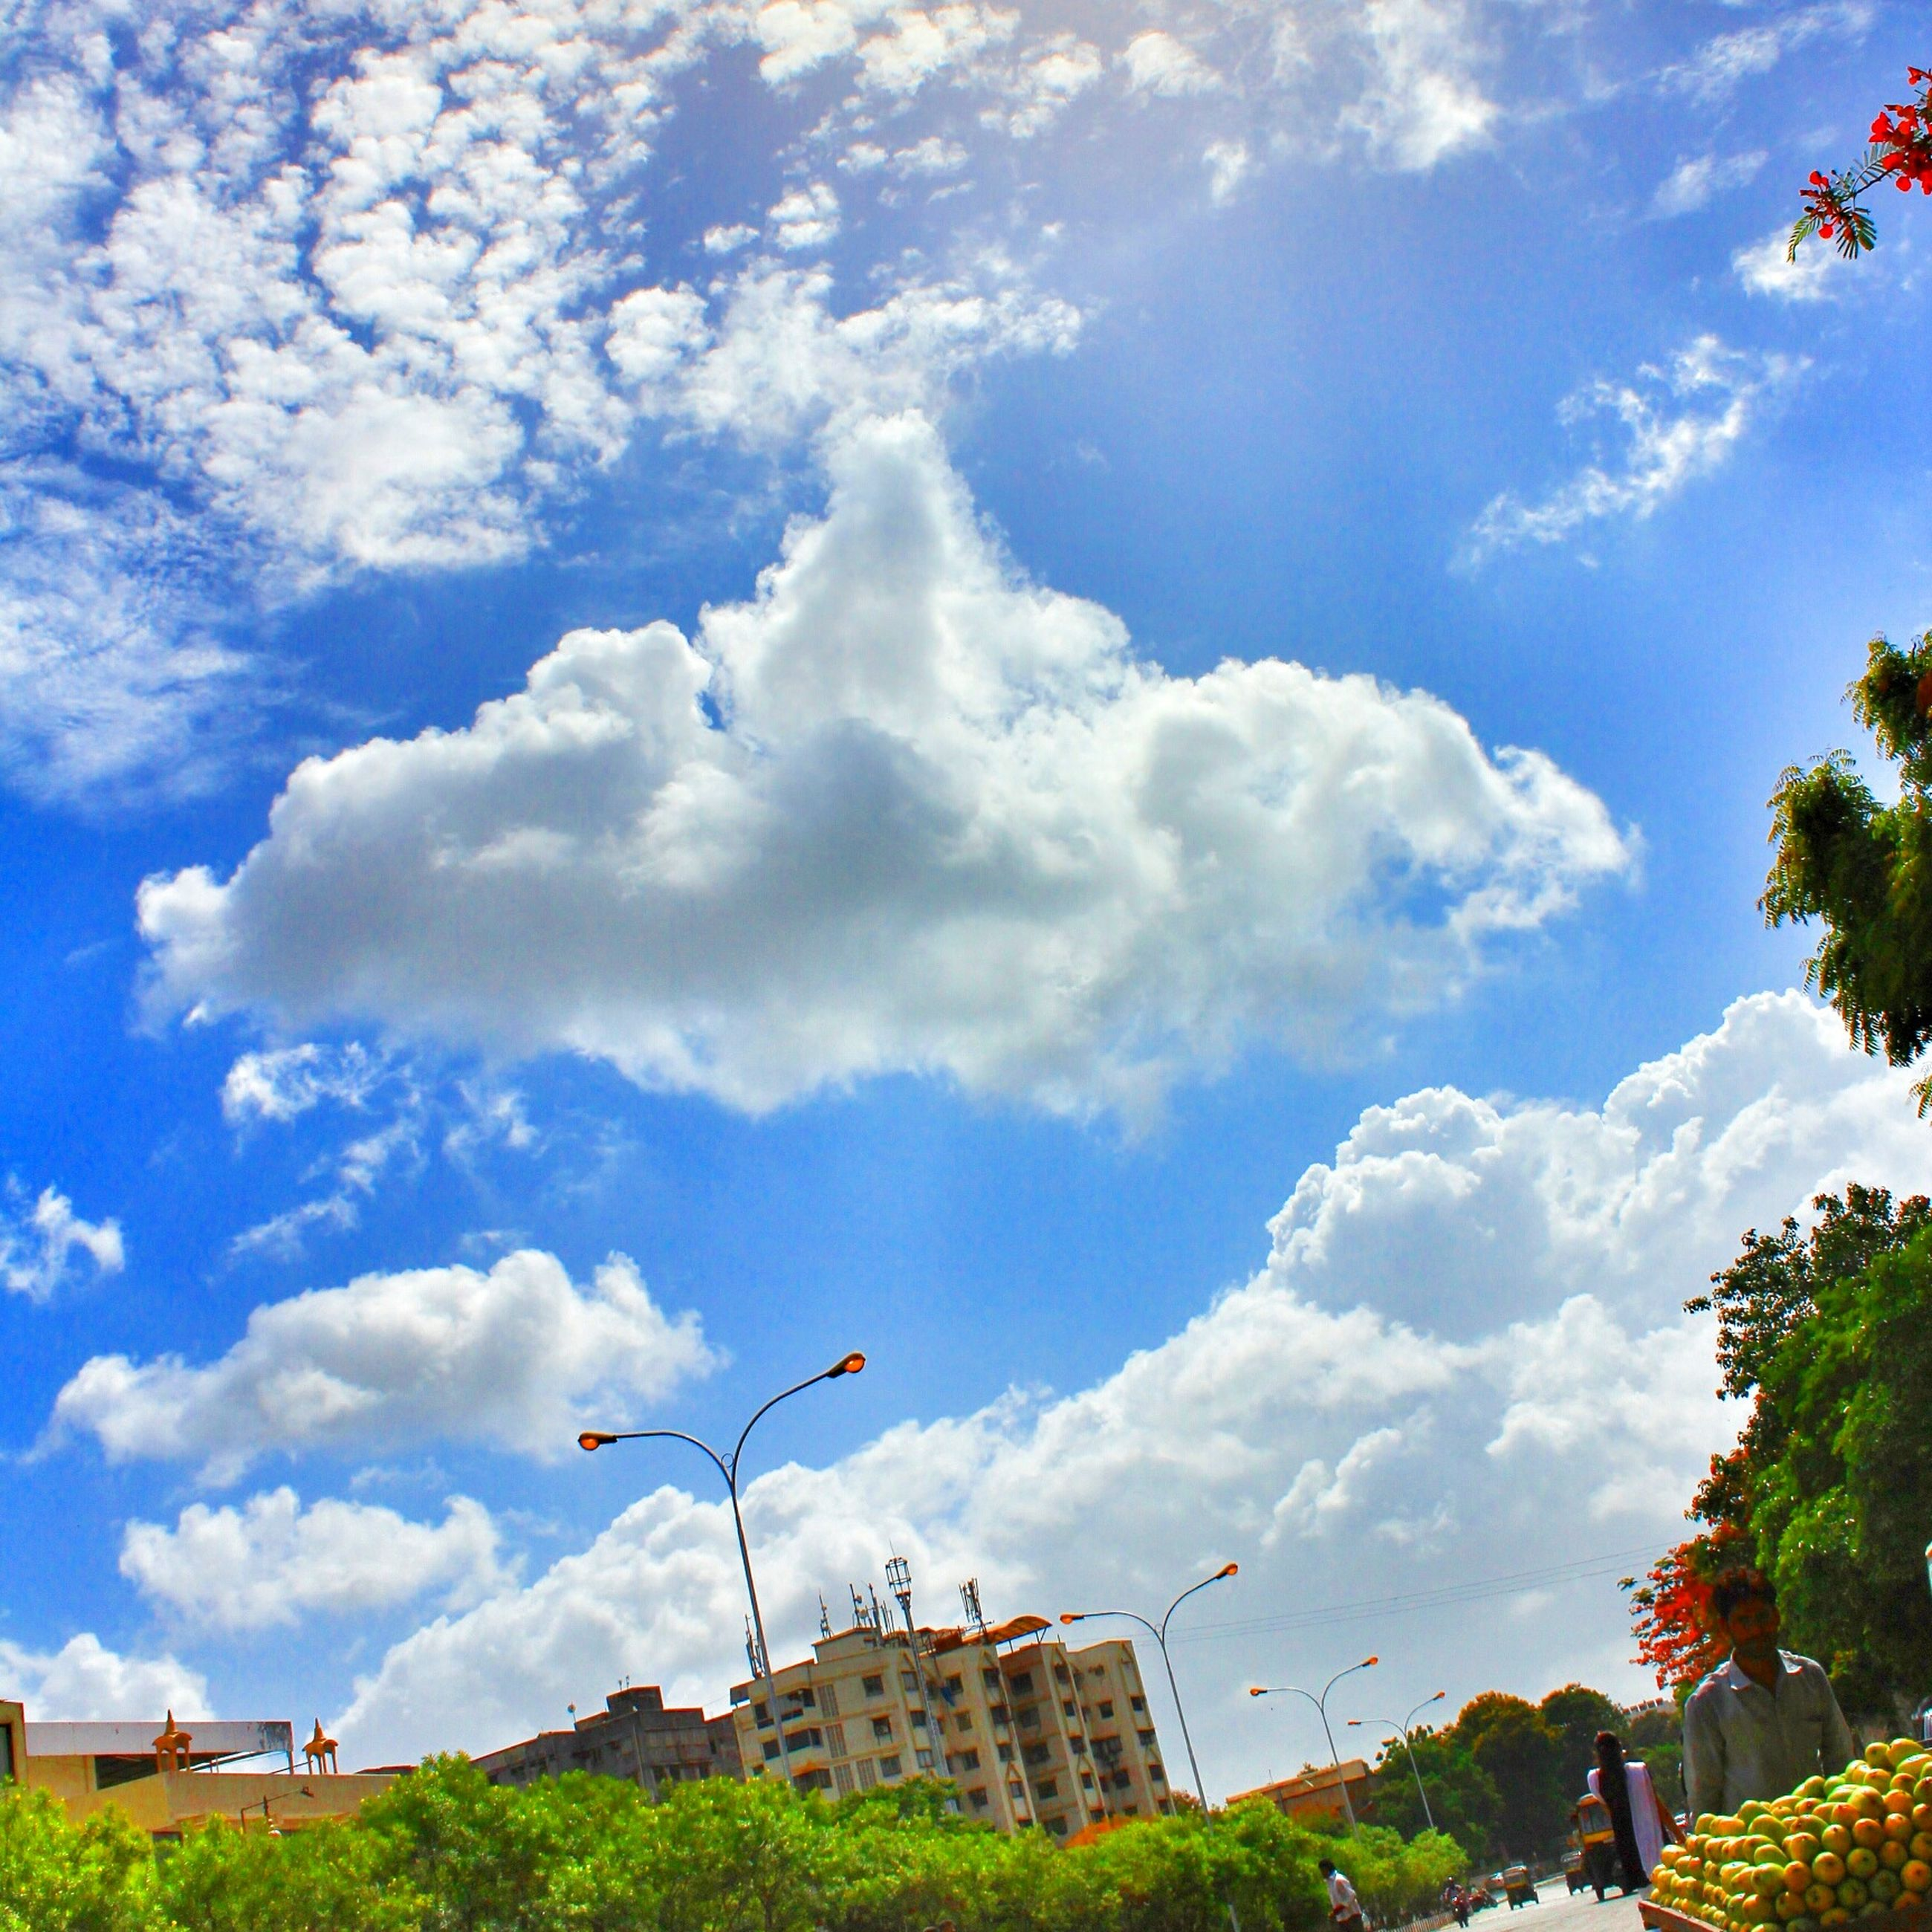 building exterior, architecture, built structure, sky, tree, cloud - sky, low angle view, city, cloud, blue, day, sunlight, outdoors, building, cloudy, residential building, house, incidental people, city life, flag